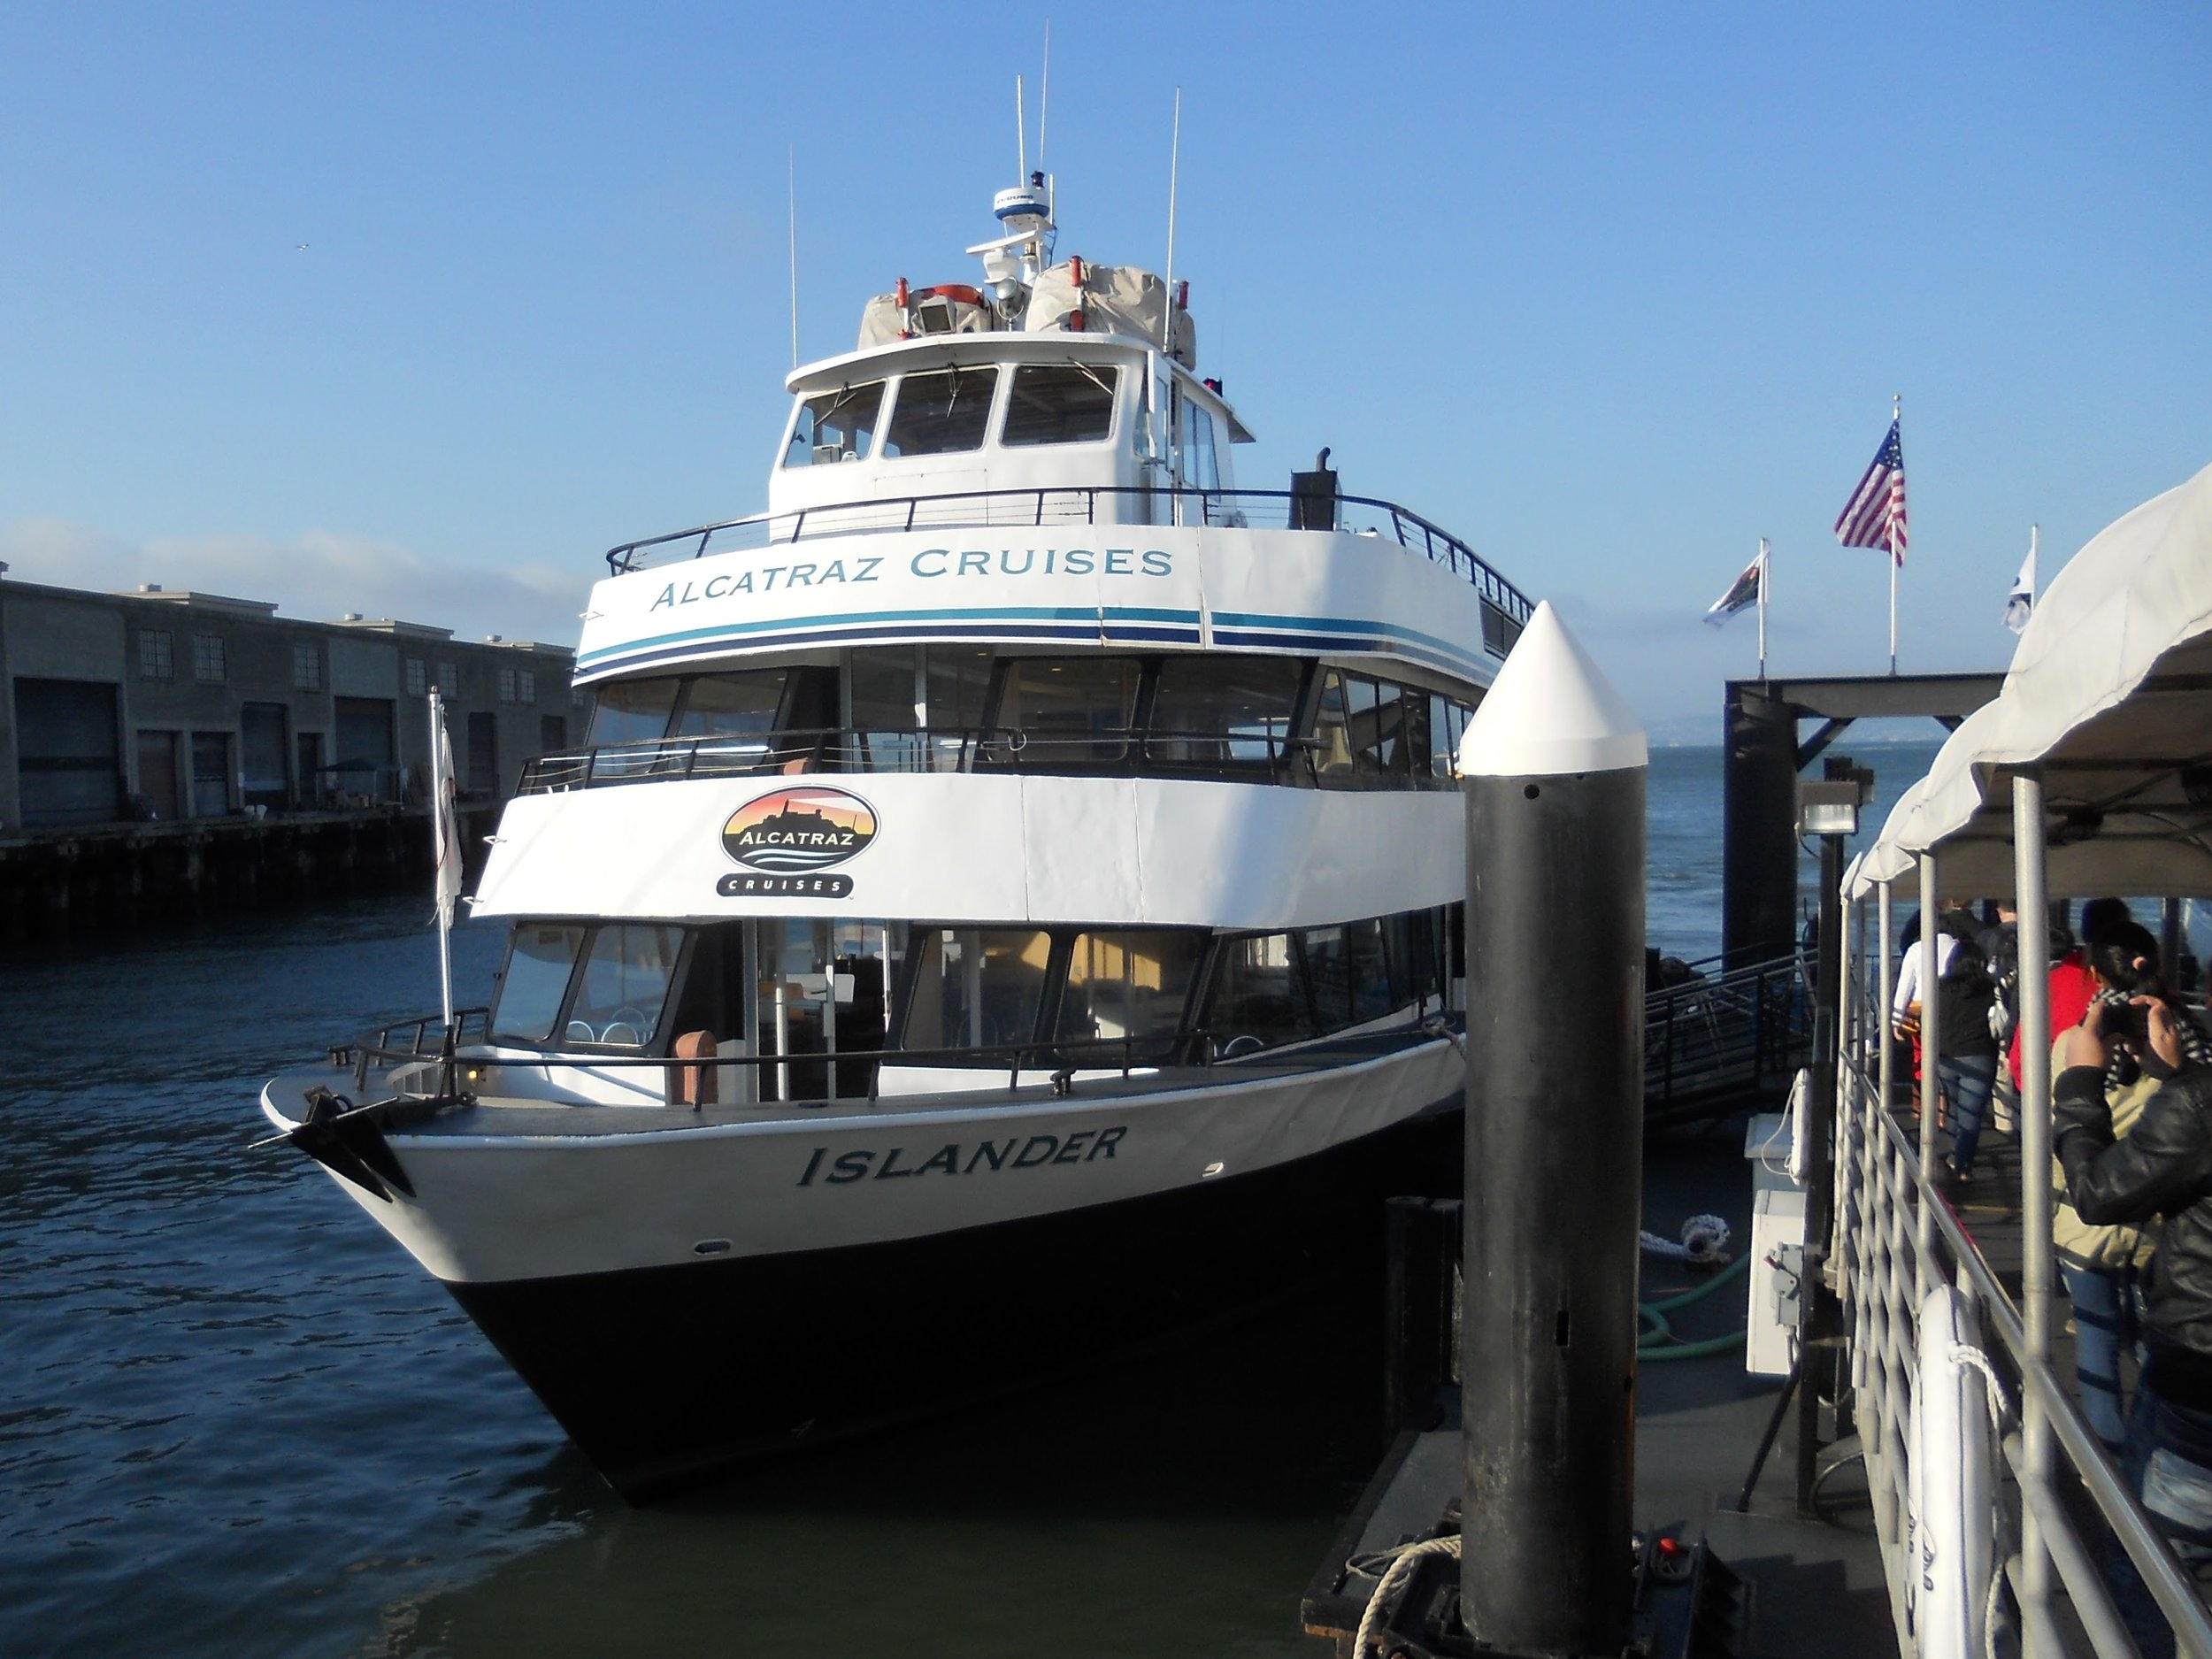 Alcatraz Cruises is the only sanctioned tour operator that docks at Alcatraz Island. There are several other operators that will bring you around the island, but won't dock